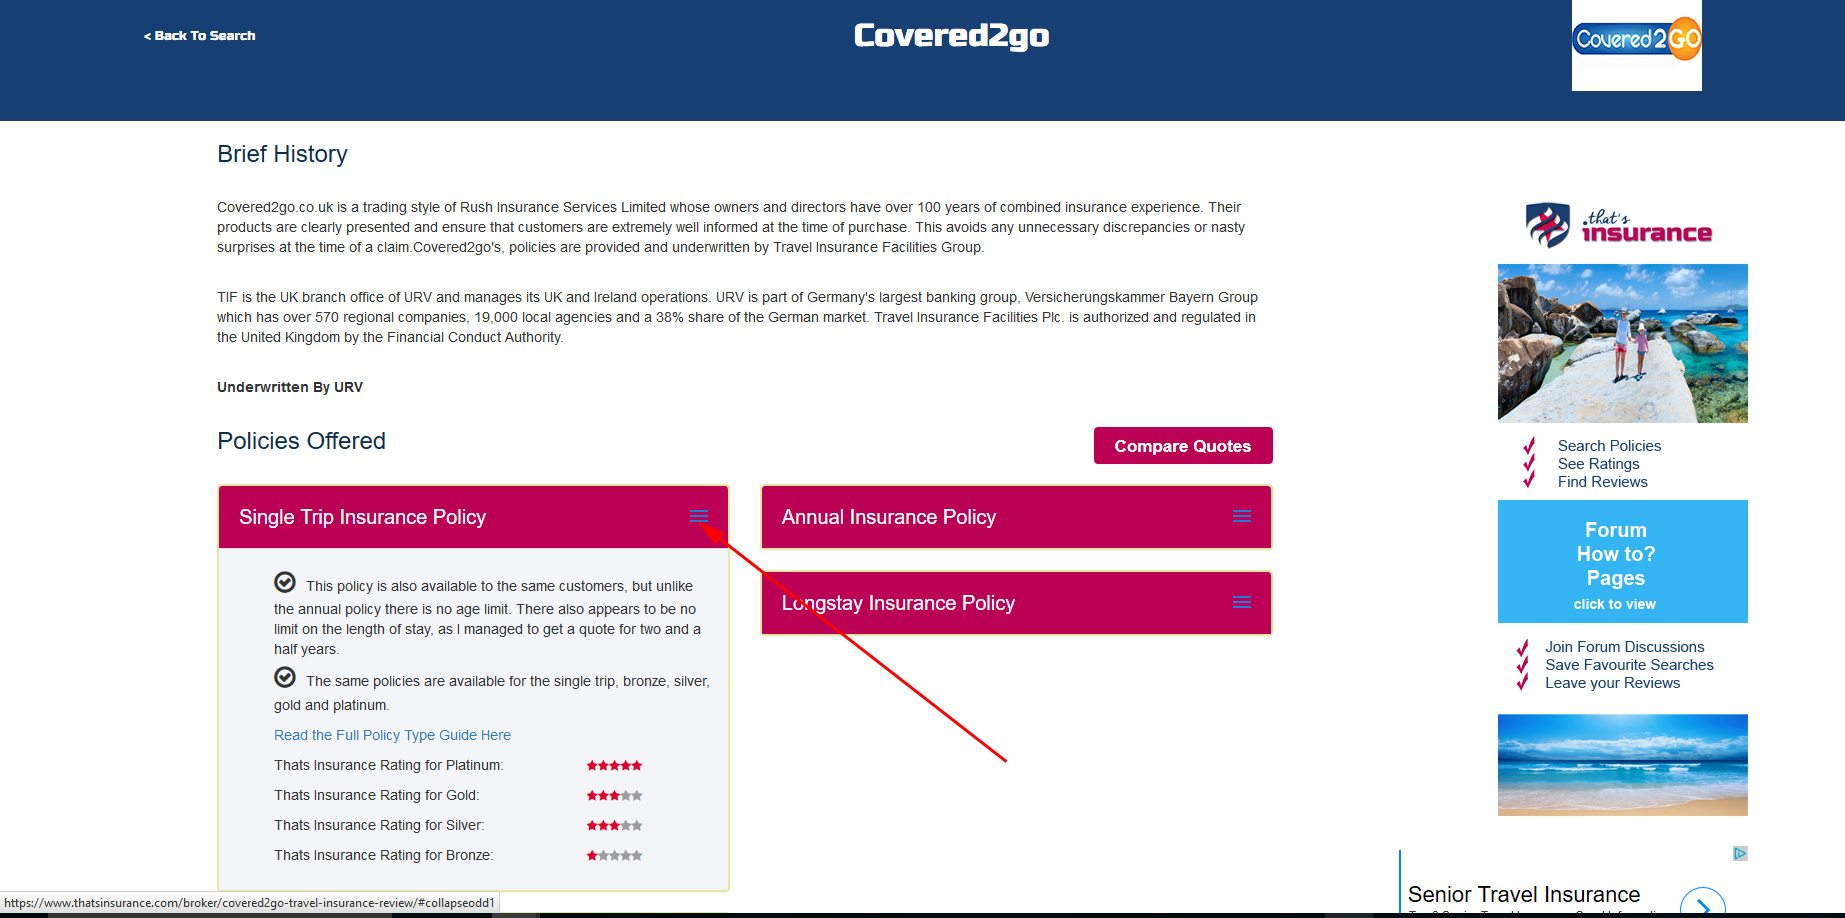 Insurance Provider Detail page